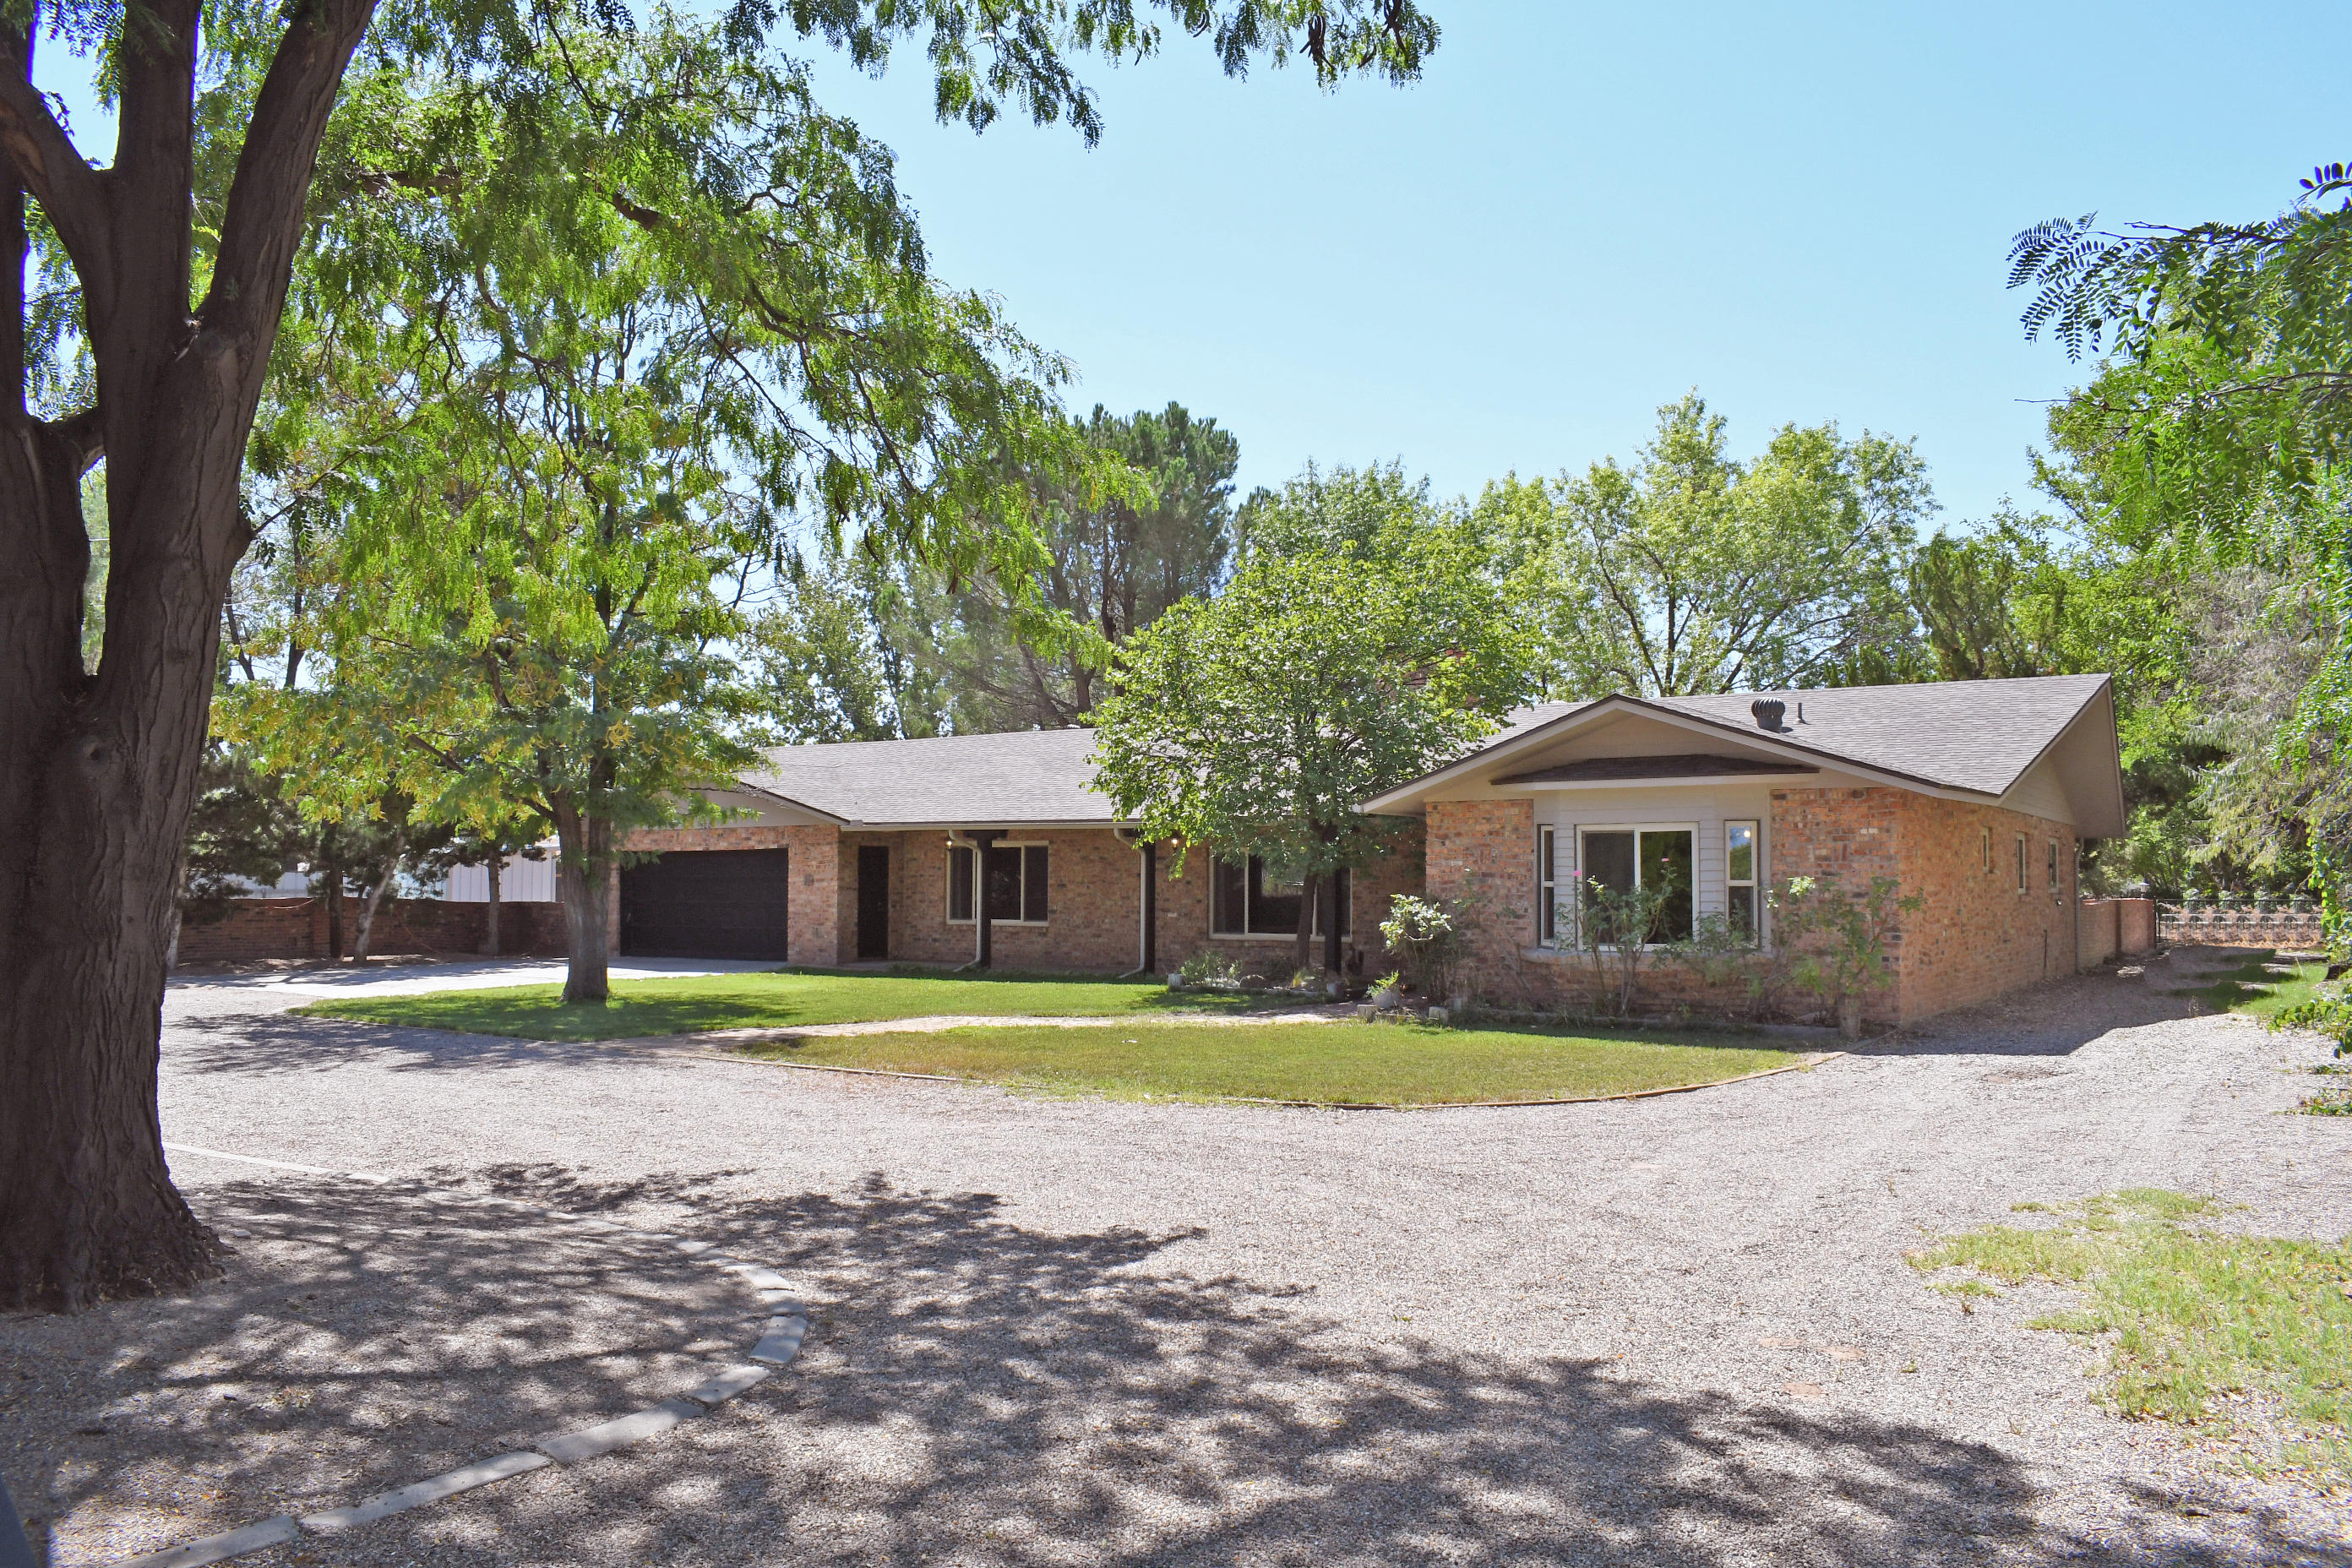 Welcome to the Drunken Brick Ranch Home. Drunken Brick is a waving brick pattern. Very beautiful effect. Drive in into the gated half moon driveway. Lovely front yard, freshly painted exterior facia and posts. Double masters, large living room with an expanse of great open formal dining room. 2 Wood burning fireplaces. Lovely kitchen with beautiful warm cabinets/ Stainless island. Family room open to the sunroom has a number uses ,office, plants, playroom, anything you can imagine. All the landscaping is on a irrigation Well. The house is on city water and sewer. The backyard is separated by a brick wall. Play yard and possible garden area. Room to build a barn  or work shop.This property let's you imagine a future in a peaceful place.  New Roof 8/2019